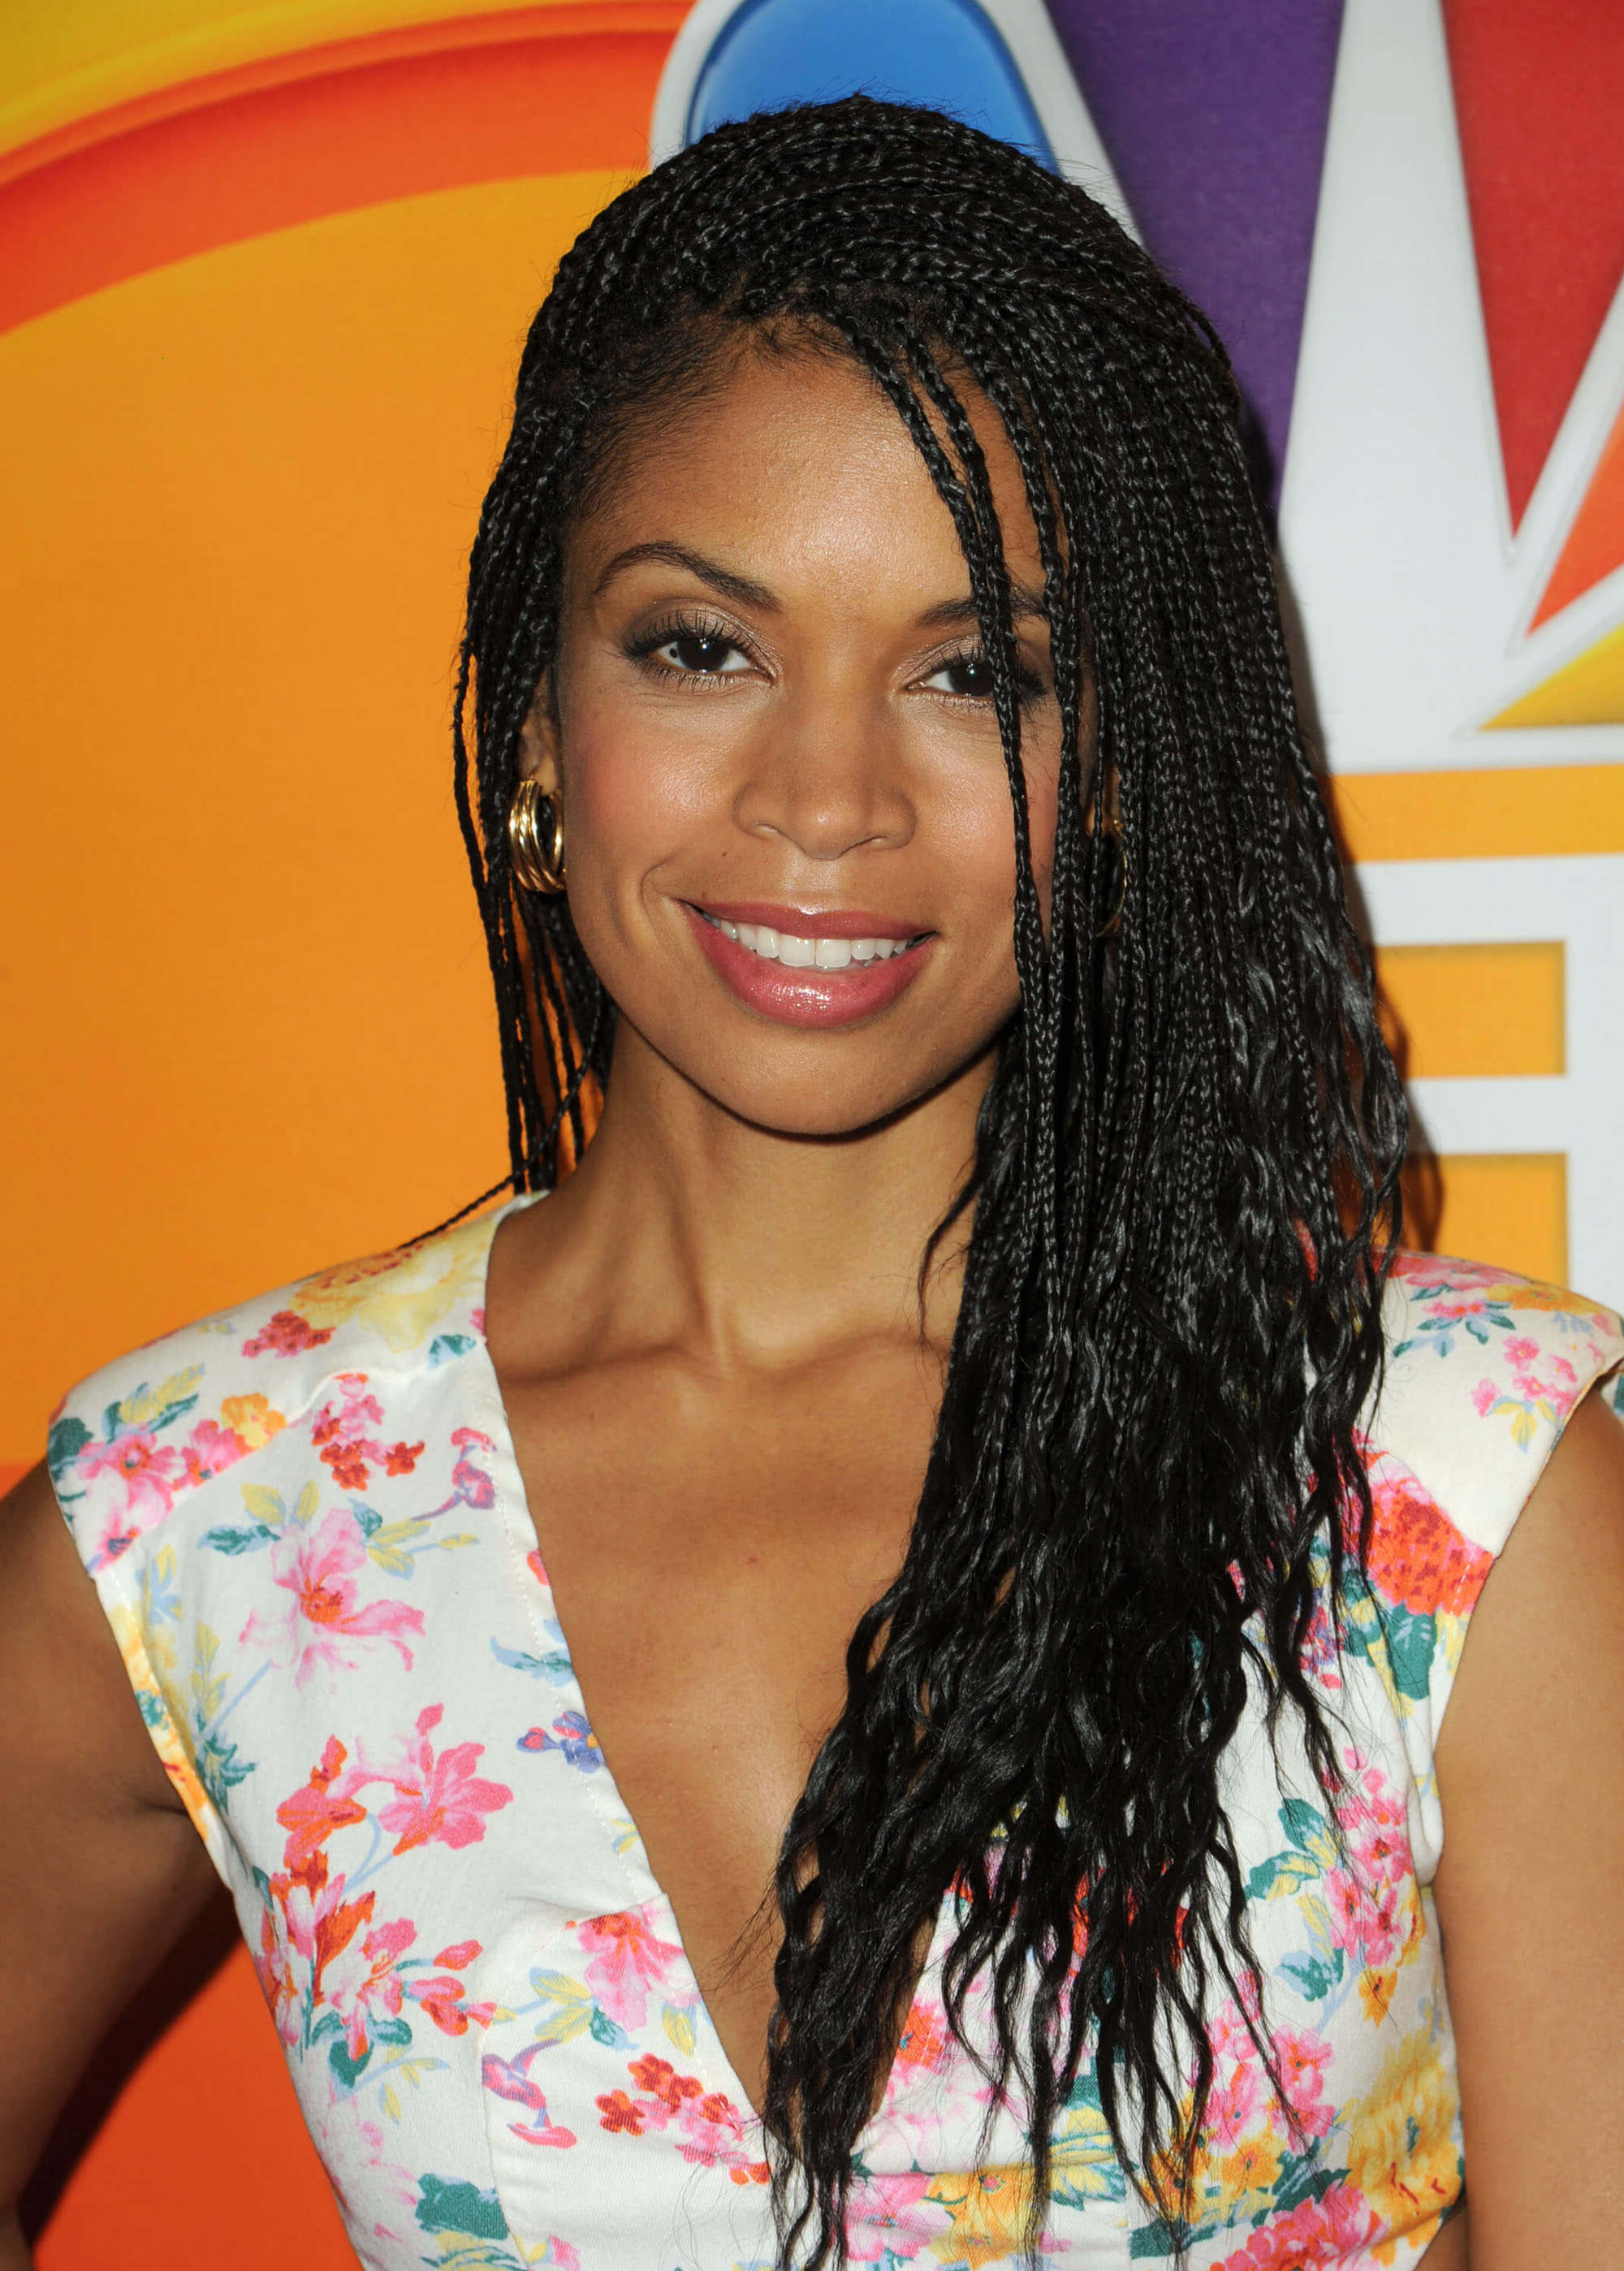 Famous Side Swept Twists Micro Braids With Beads Intended For Micro Braids Hairstyles: 7 Celebrity Looks You Have To See (View 8 of 20)